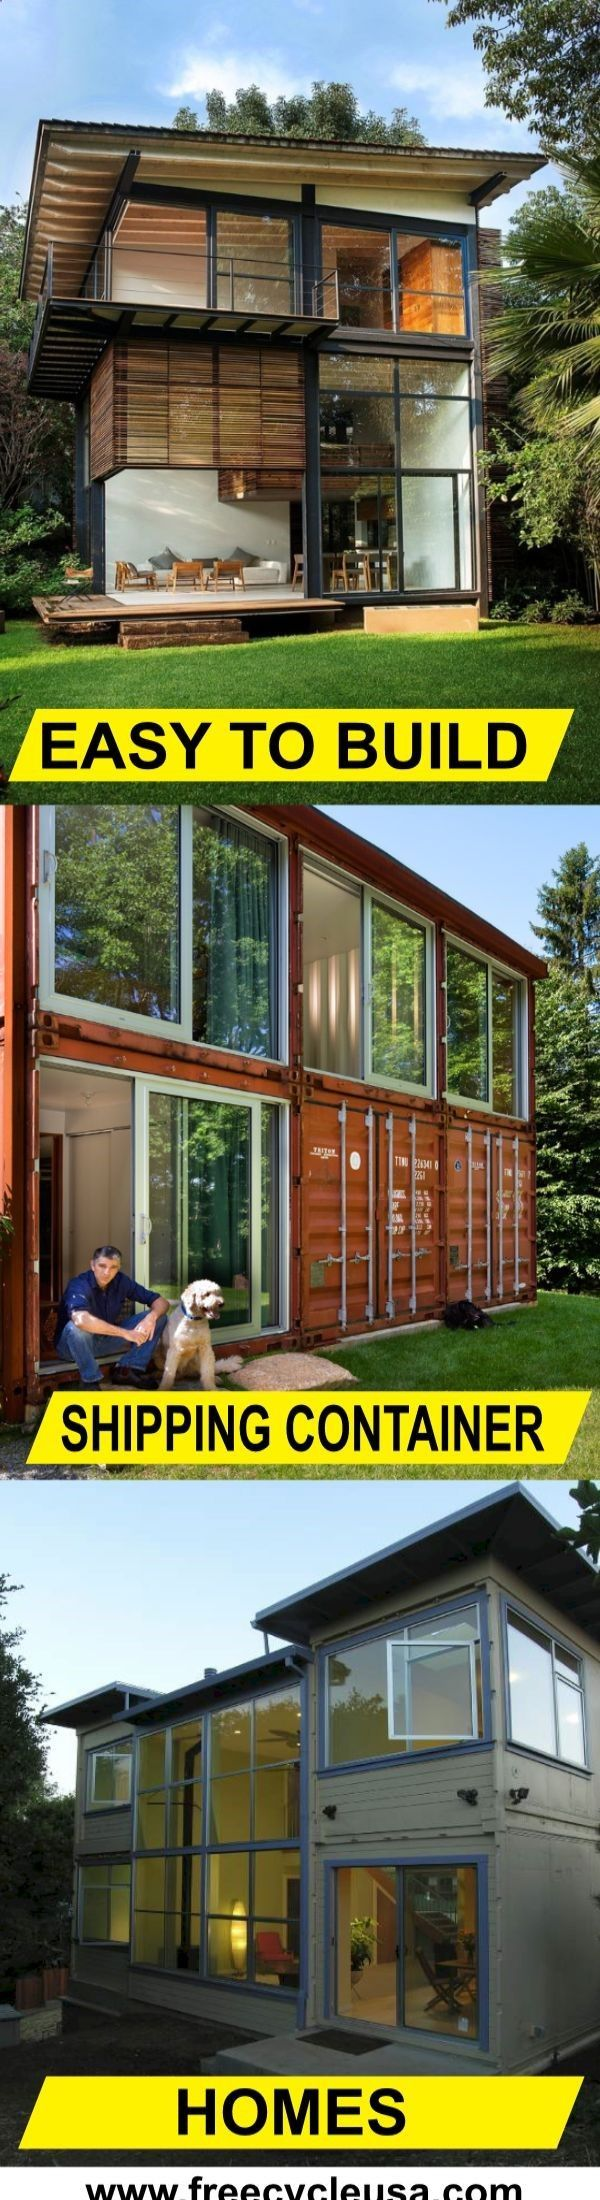 The 25+ best Shipping containers ideas on Pinterest | Shipping ...